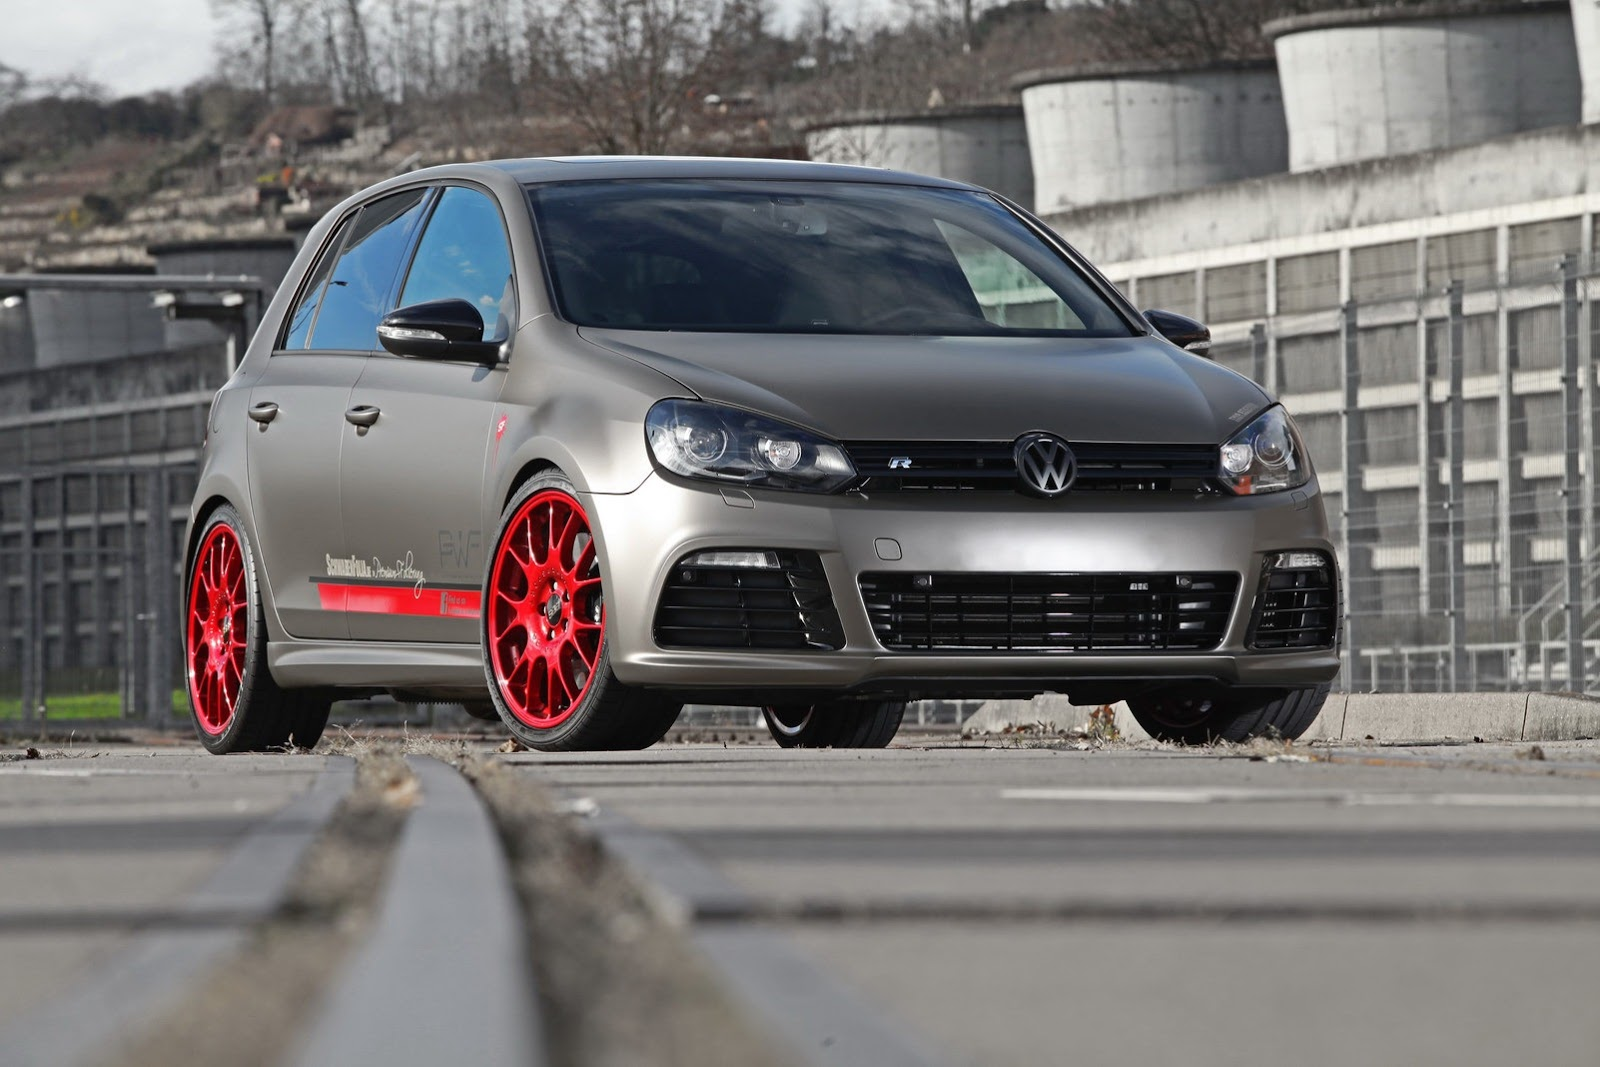 vw golf r tuned to 330 hp by schwabenfolia autoevolution. Black Bedroom Furniture Sets. Home Design Ideas